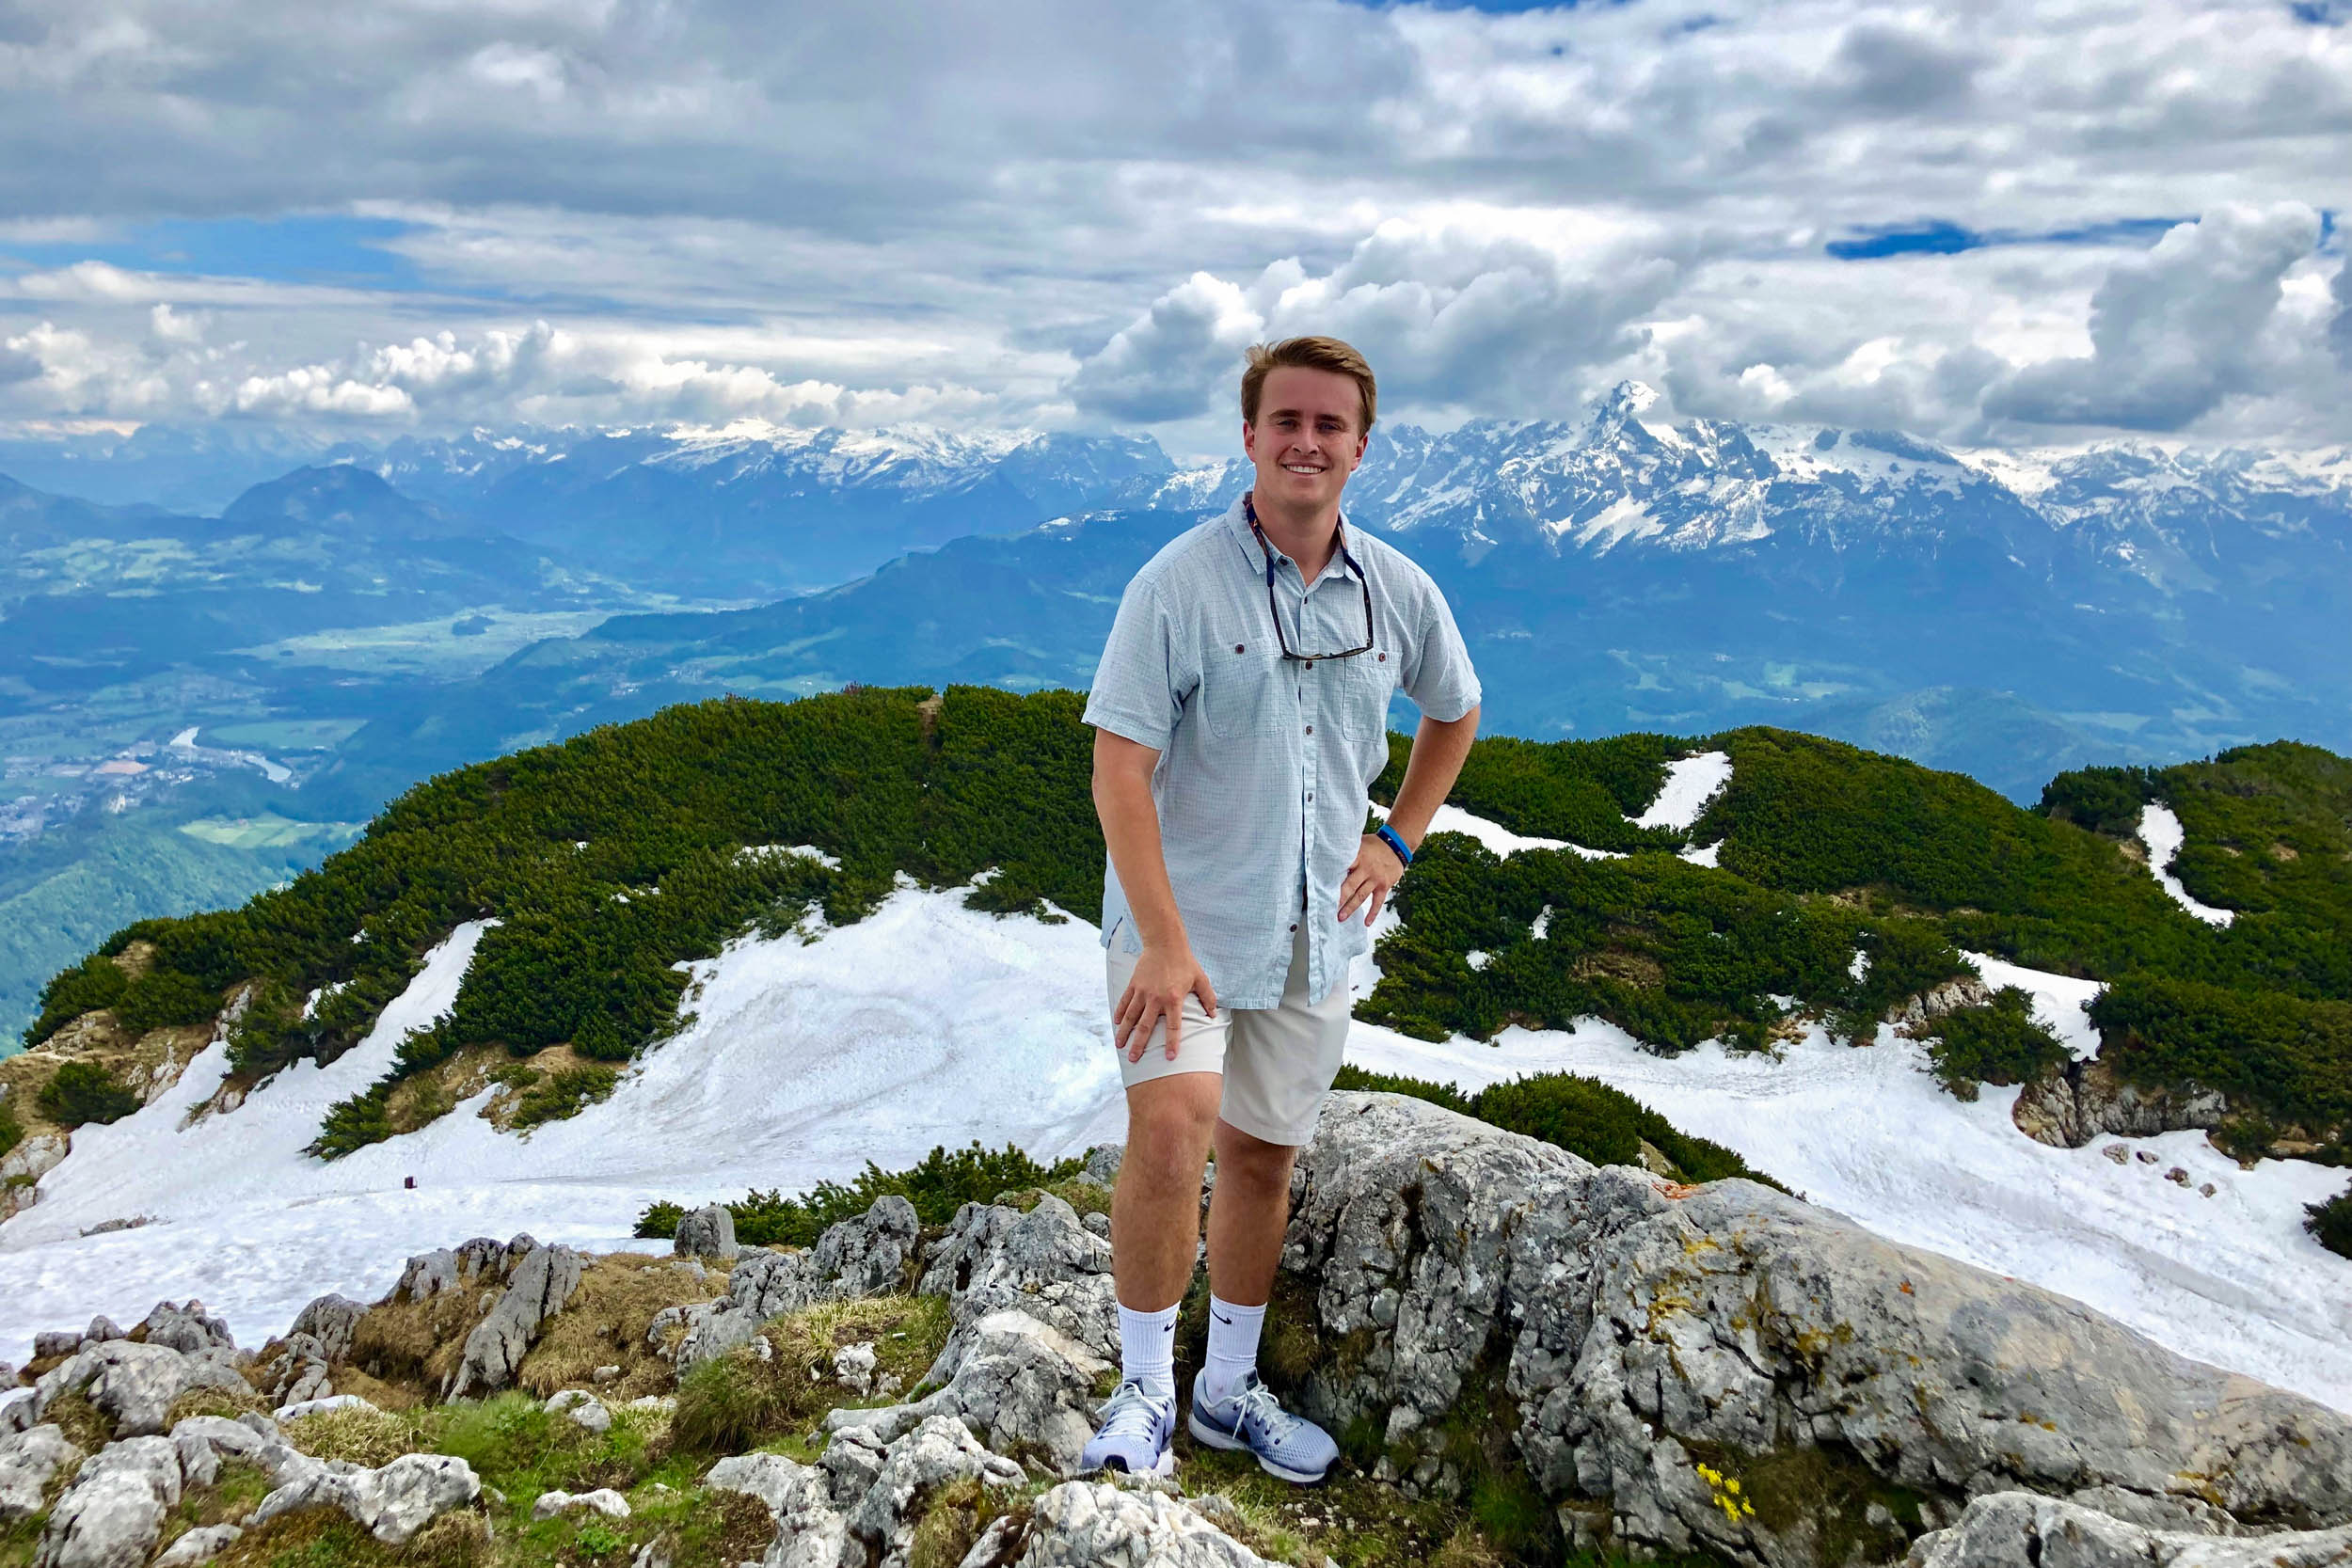 Lee Dudley on a day hike in Berchtesgaden, Germany while on his extracurricular trip to Salzburg, Austria.